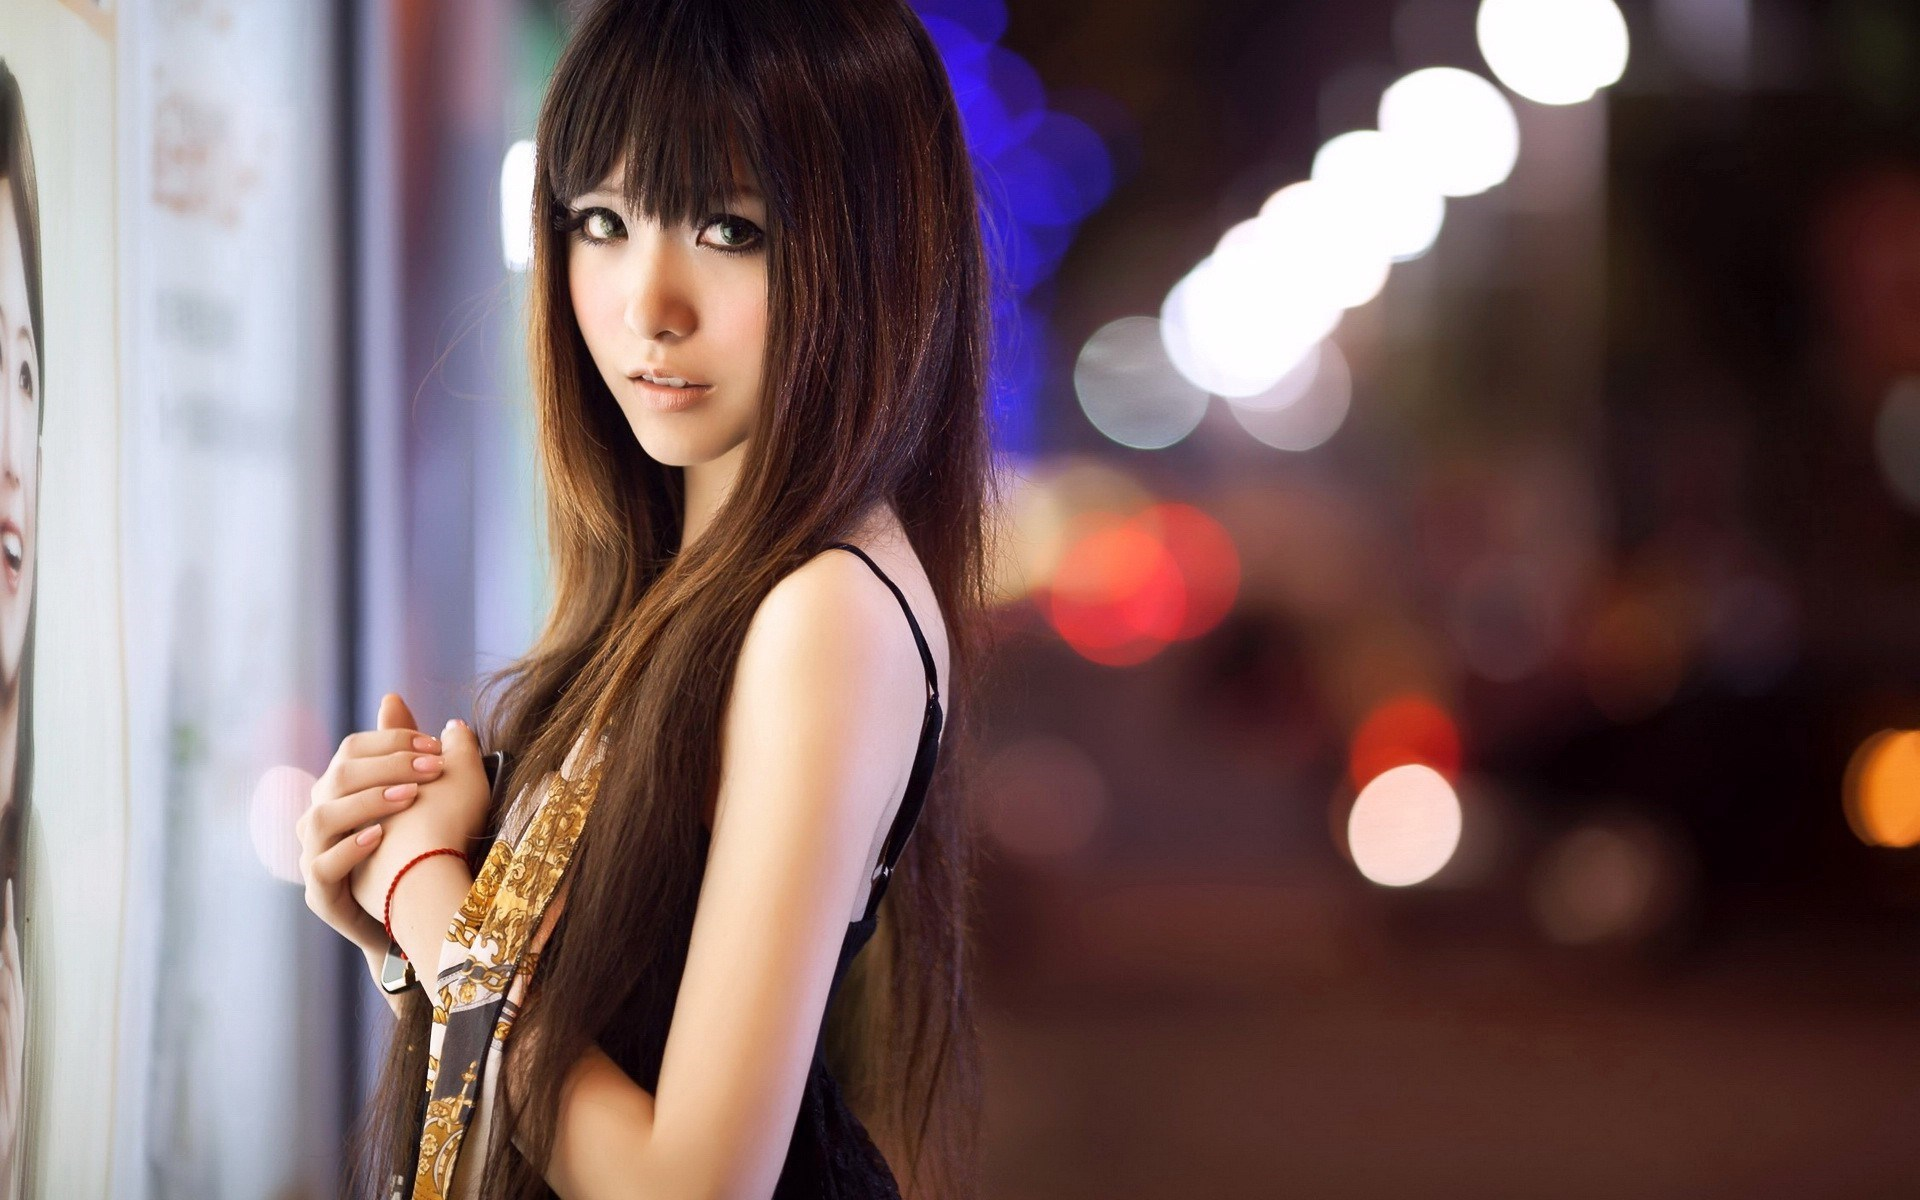 Asian Girl City Lights